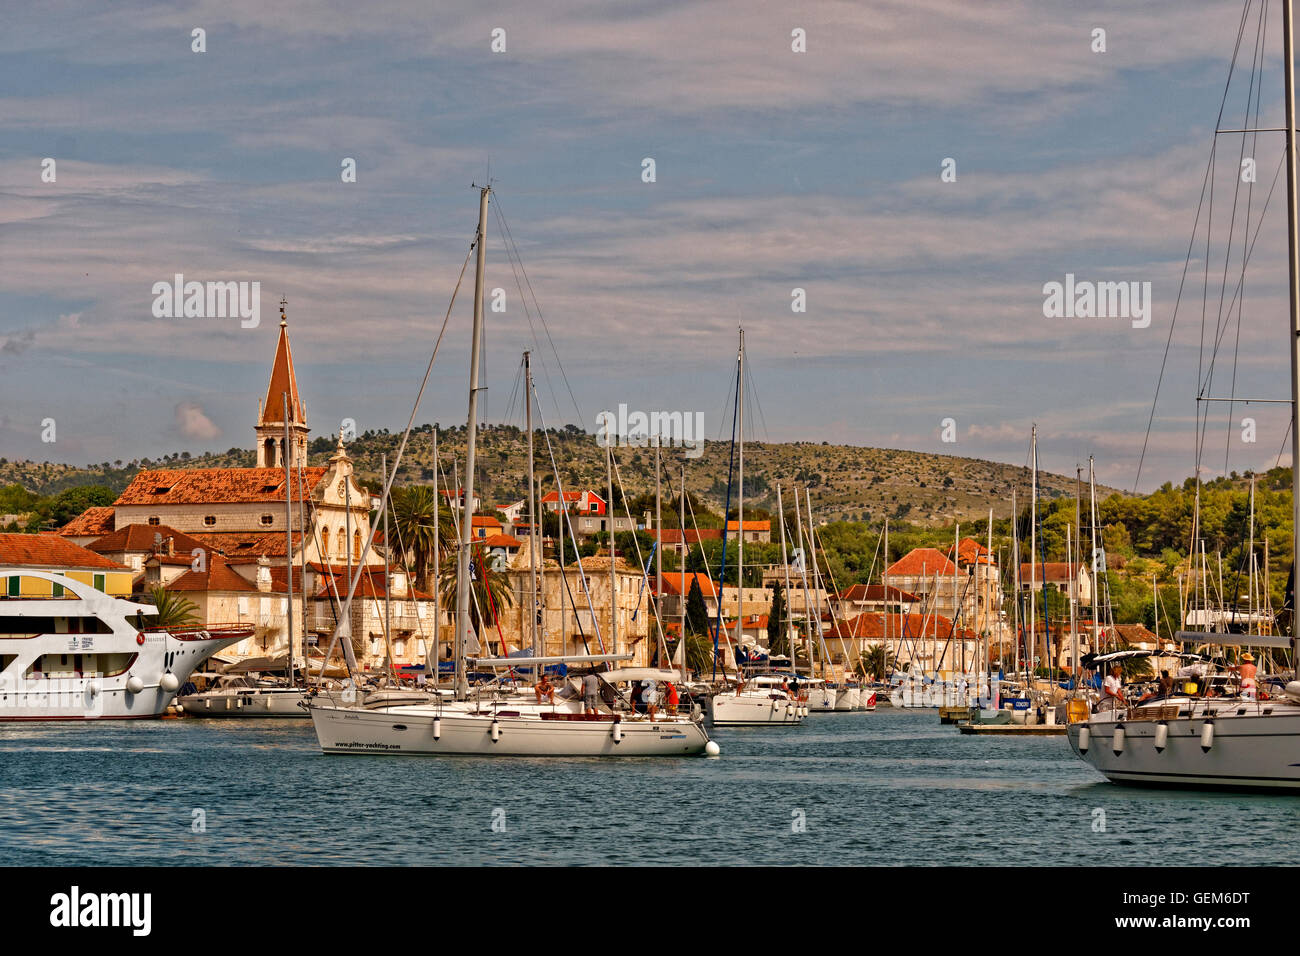 Cruising yacht berthing in the town of Milna on the island of Brac, Croatia. - Stock Image